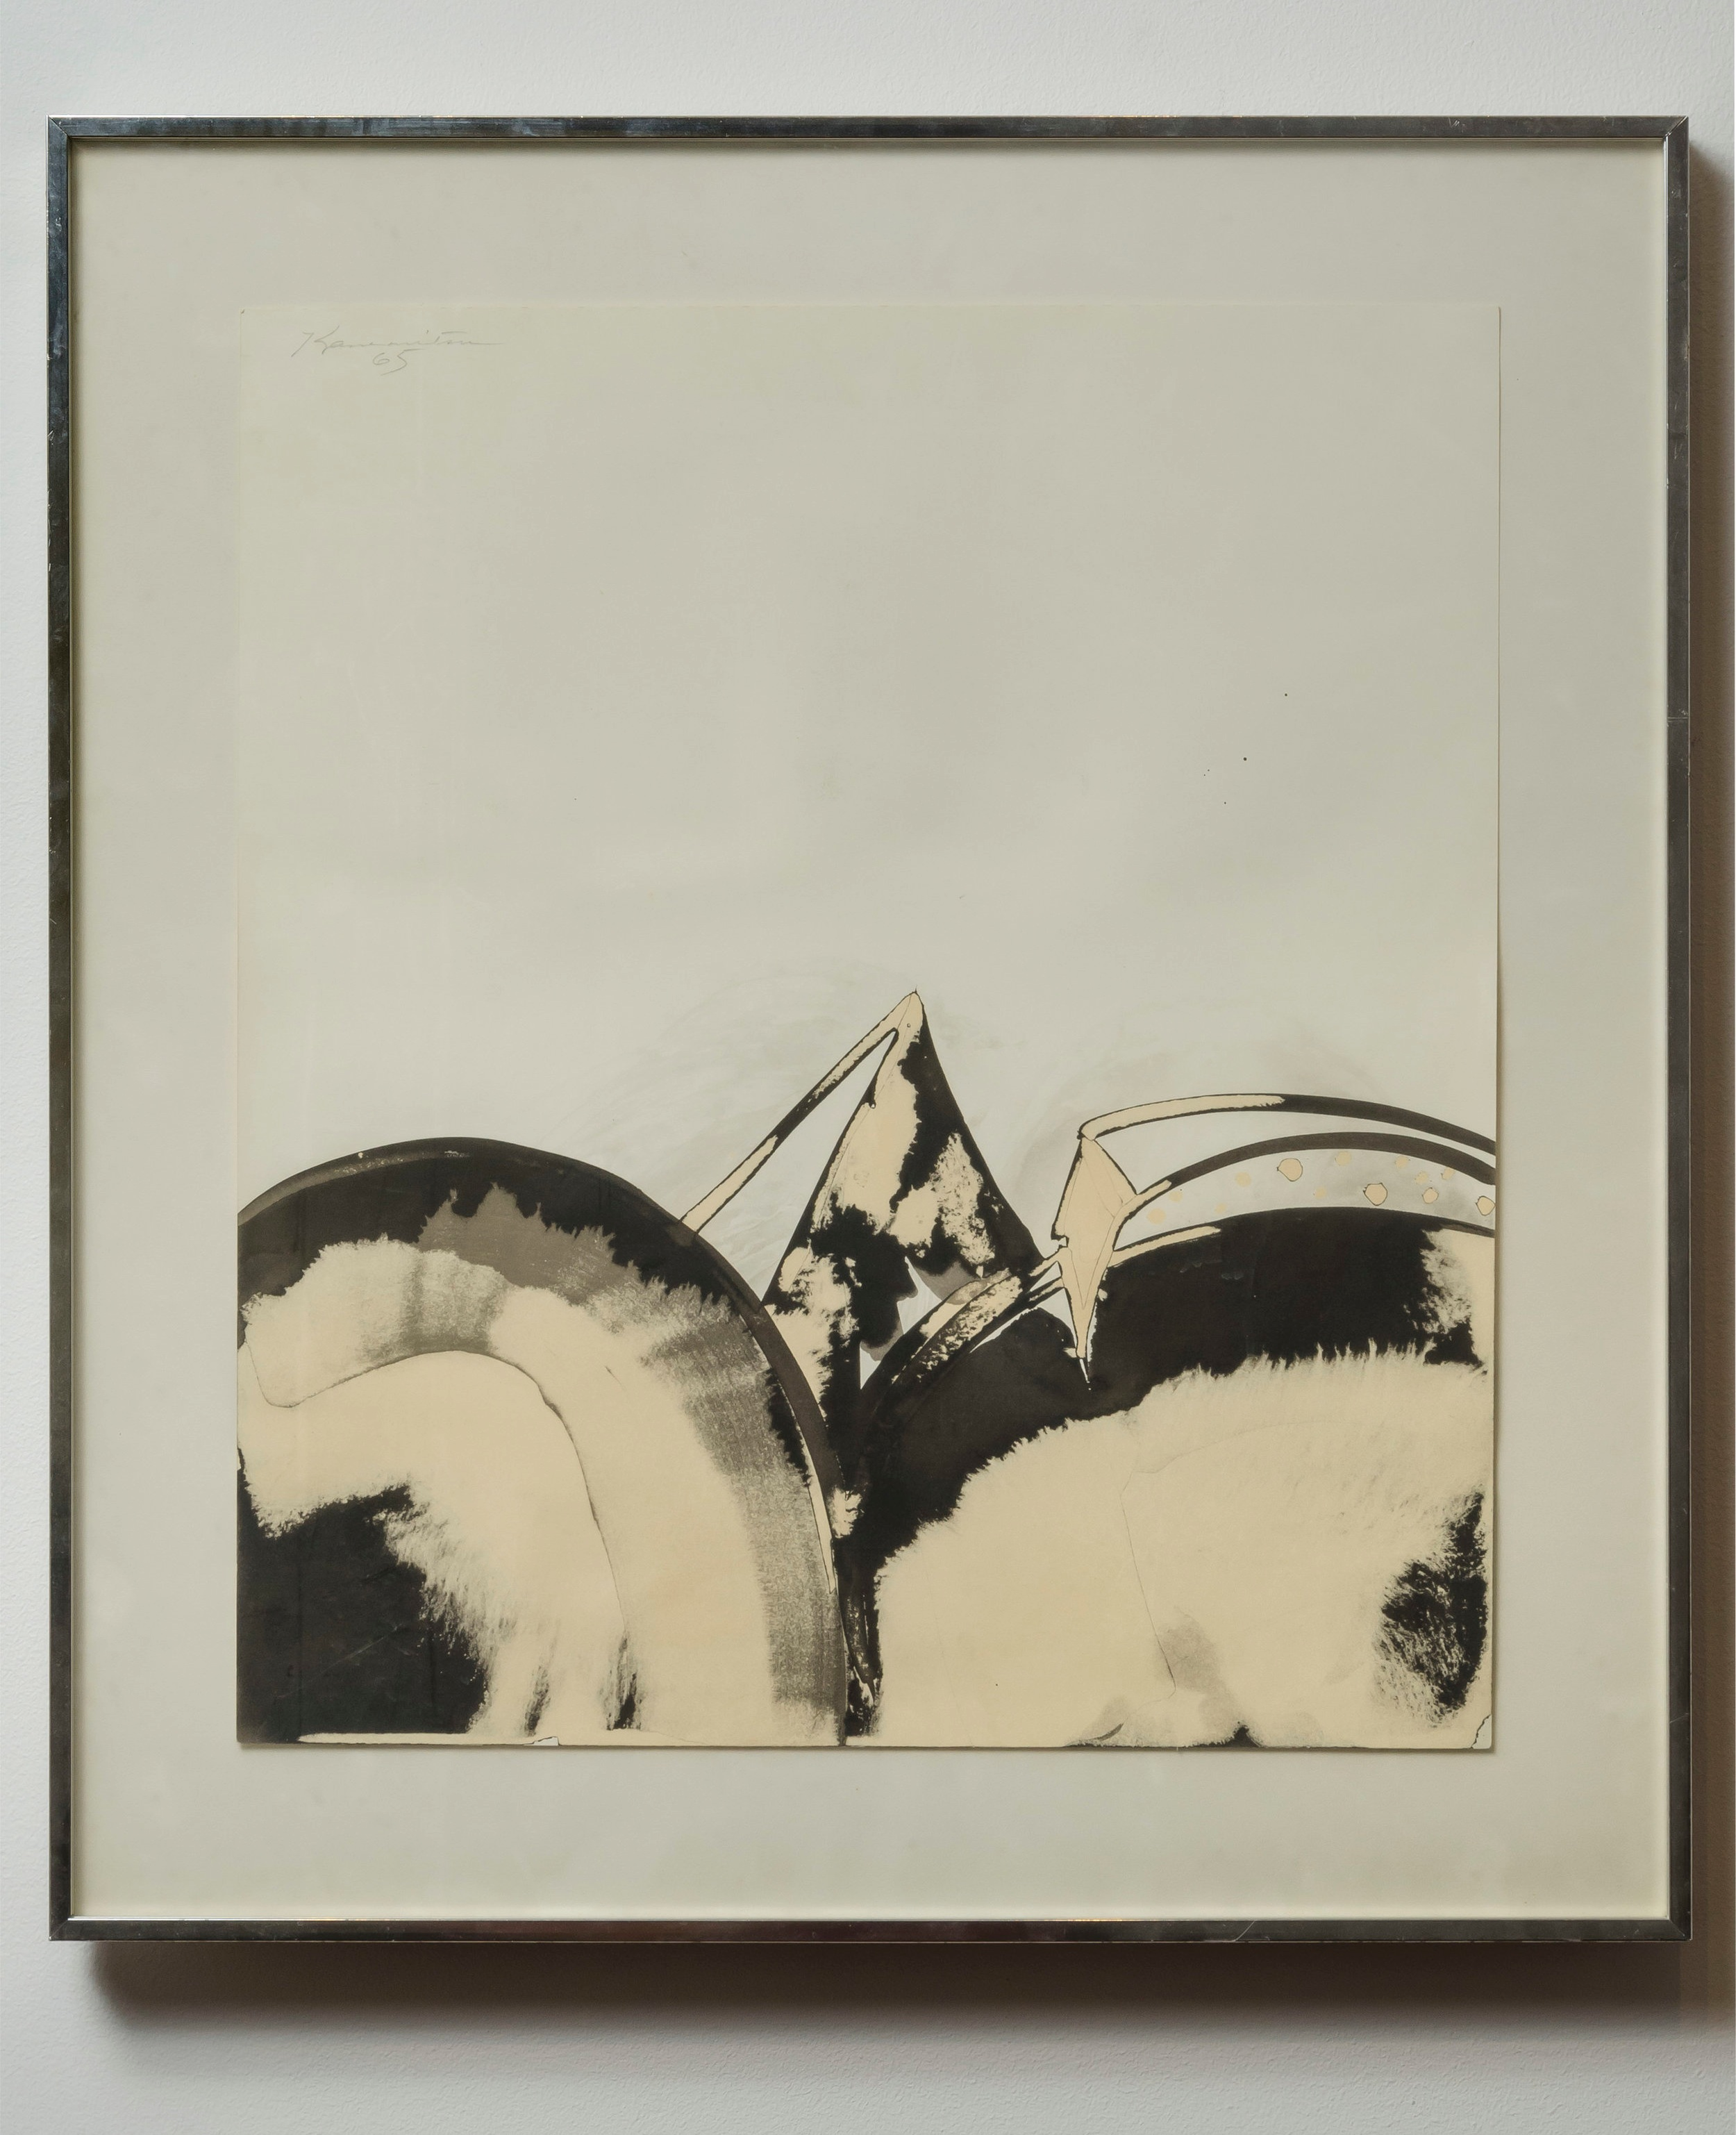 Untitled   1965  sumi ink on paper  16 x 14 inches, 40.6 x 35.6 centimeters